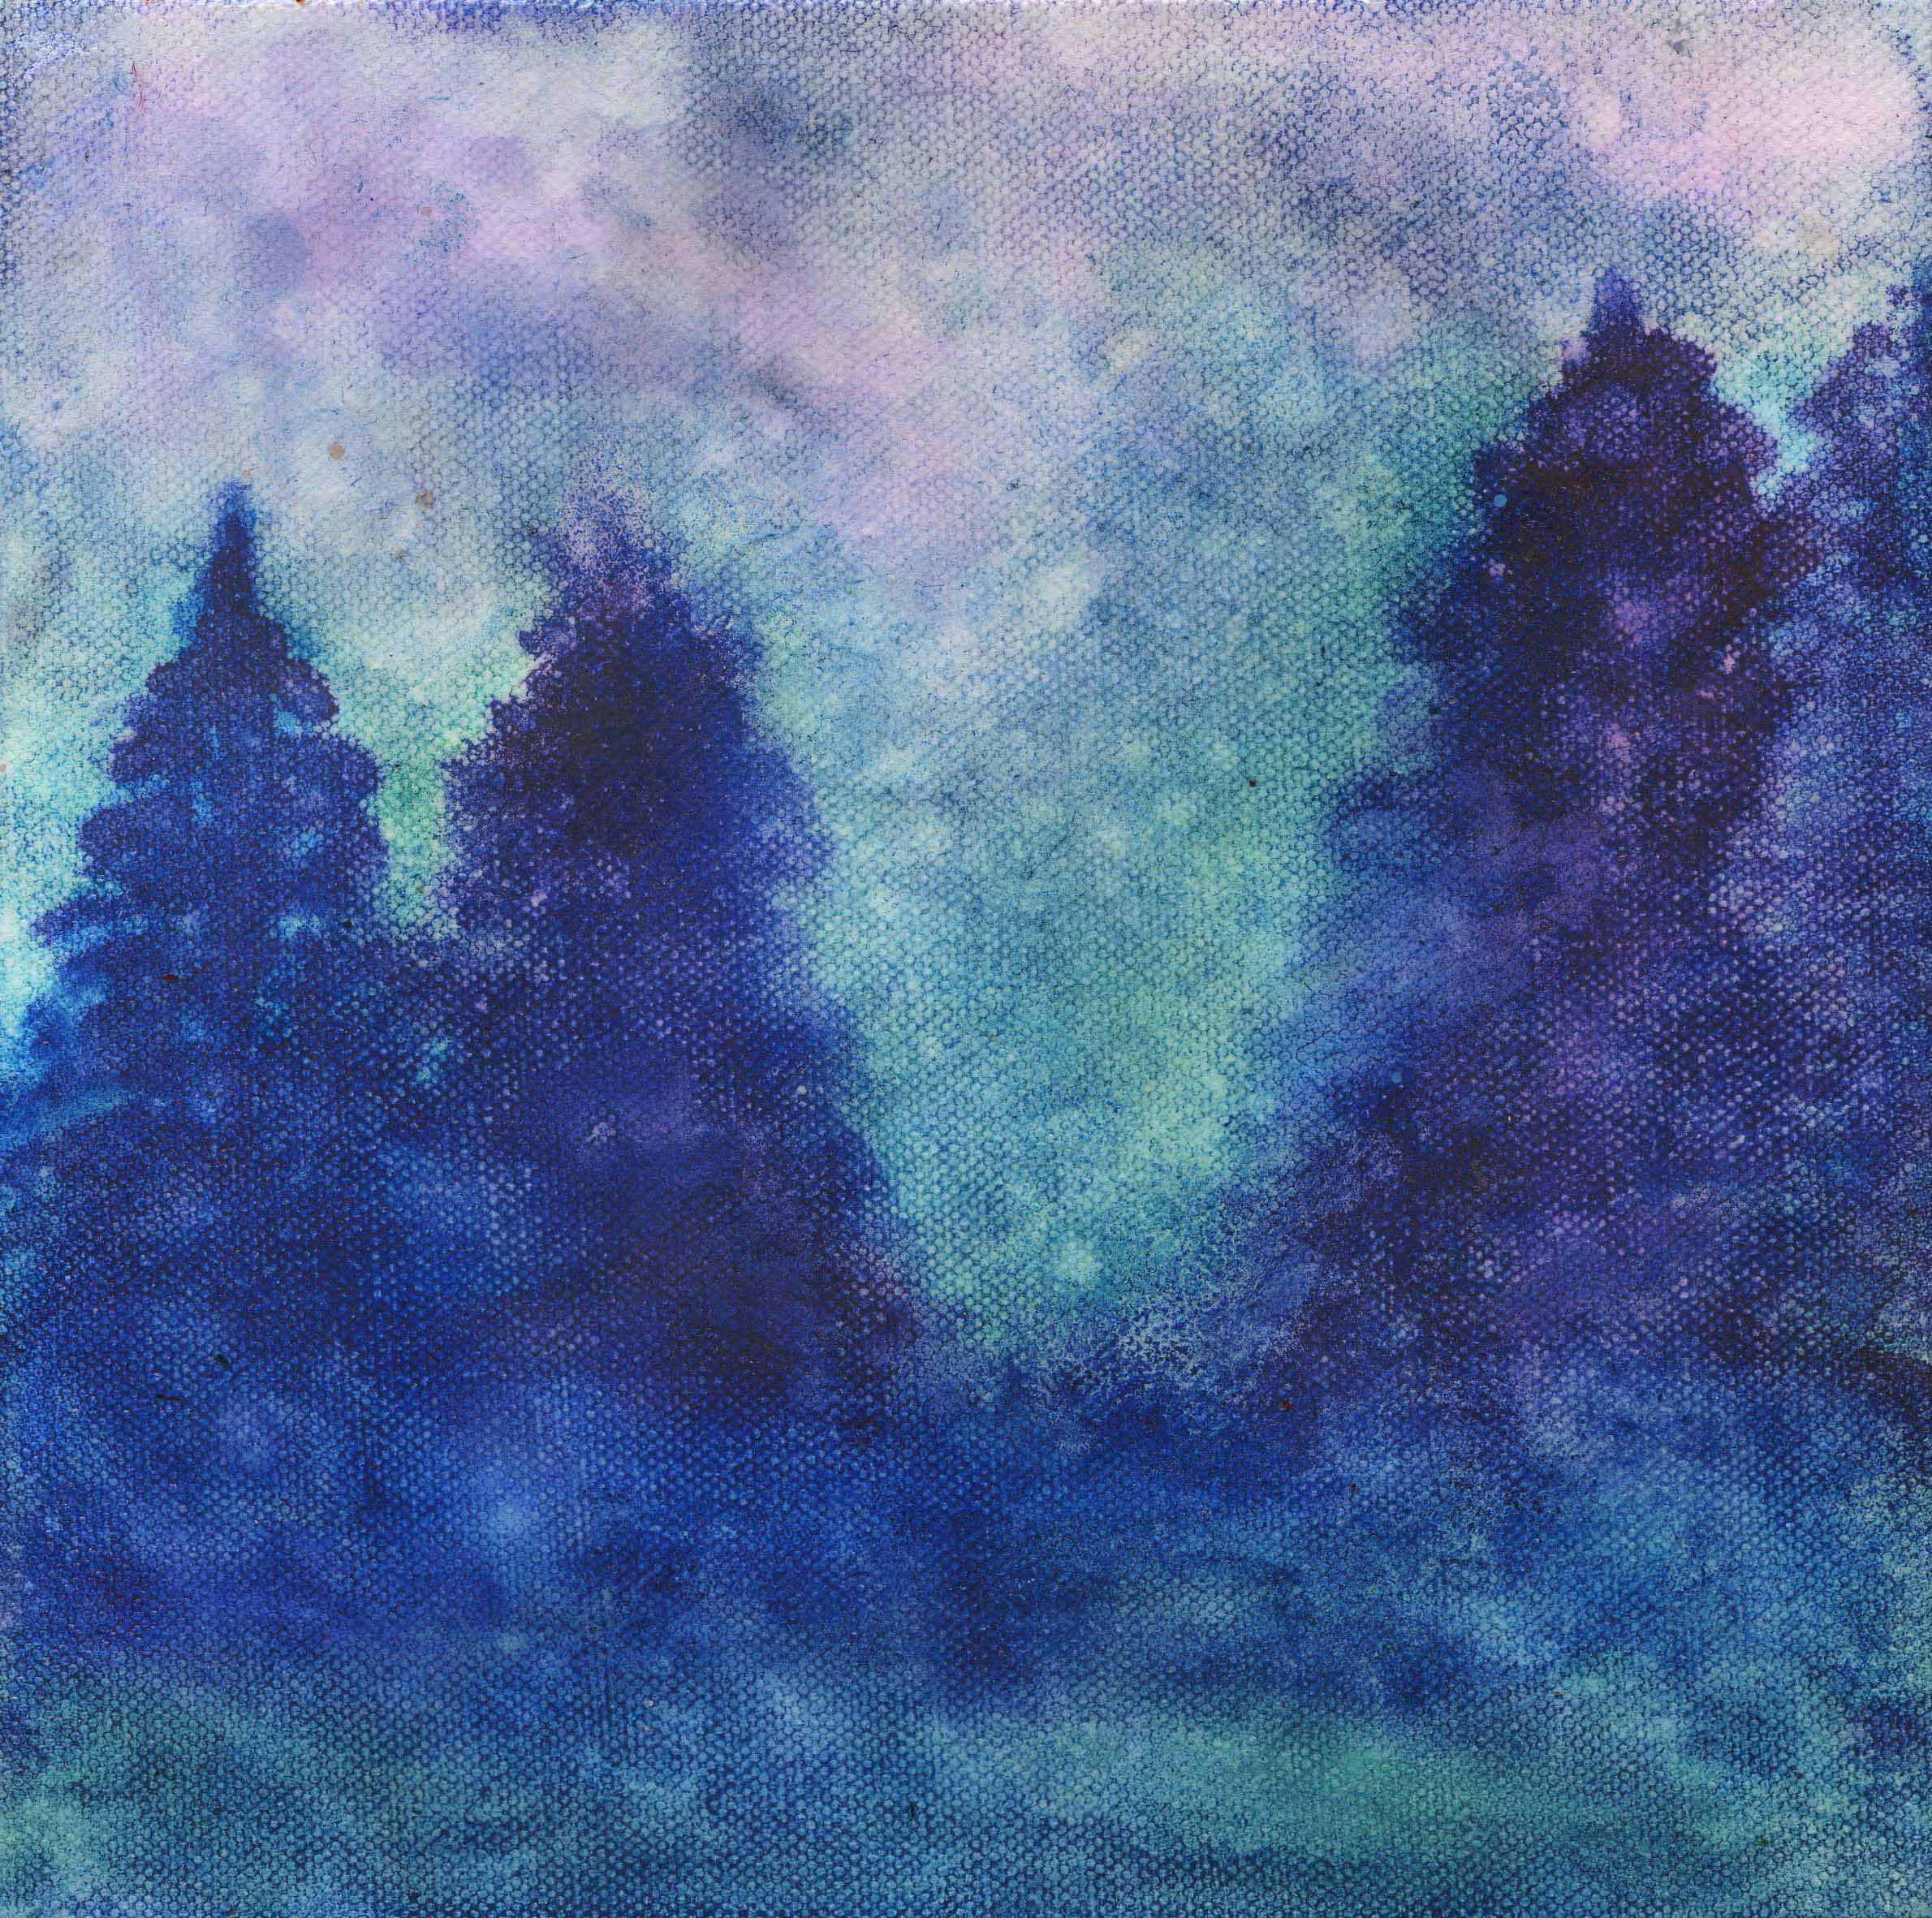 At Twilight Alcohol Ink on canvas - 8 X 8 - $130